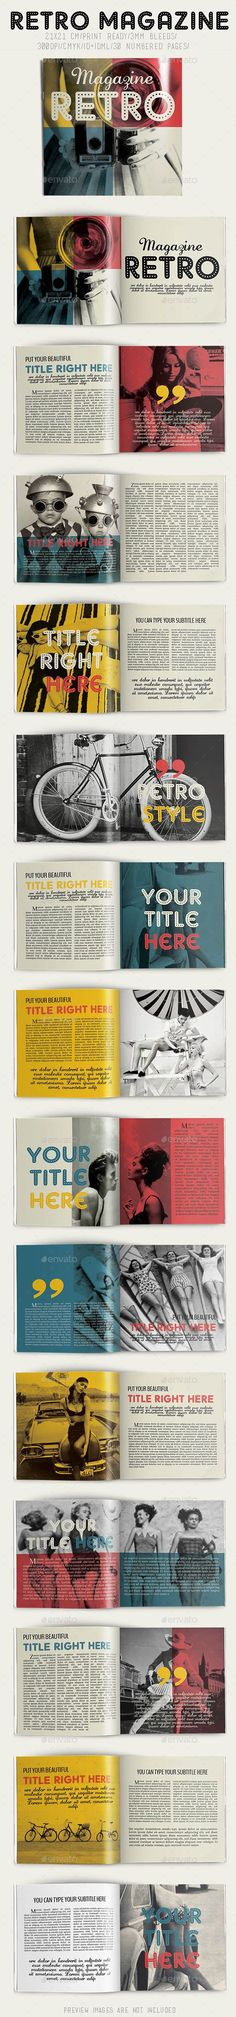 Retro Magazine — InDesign INDD #retro #letter • Available here → https://graphicriver.net/item/retro-magazine/8815658?ref=pxcr